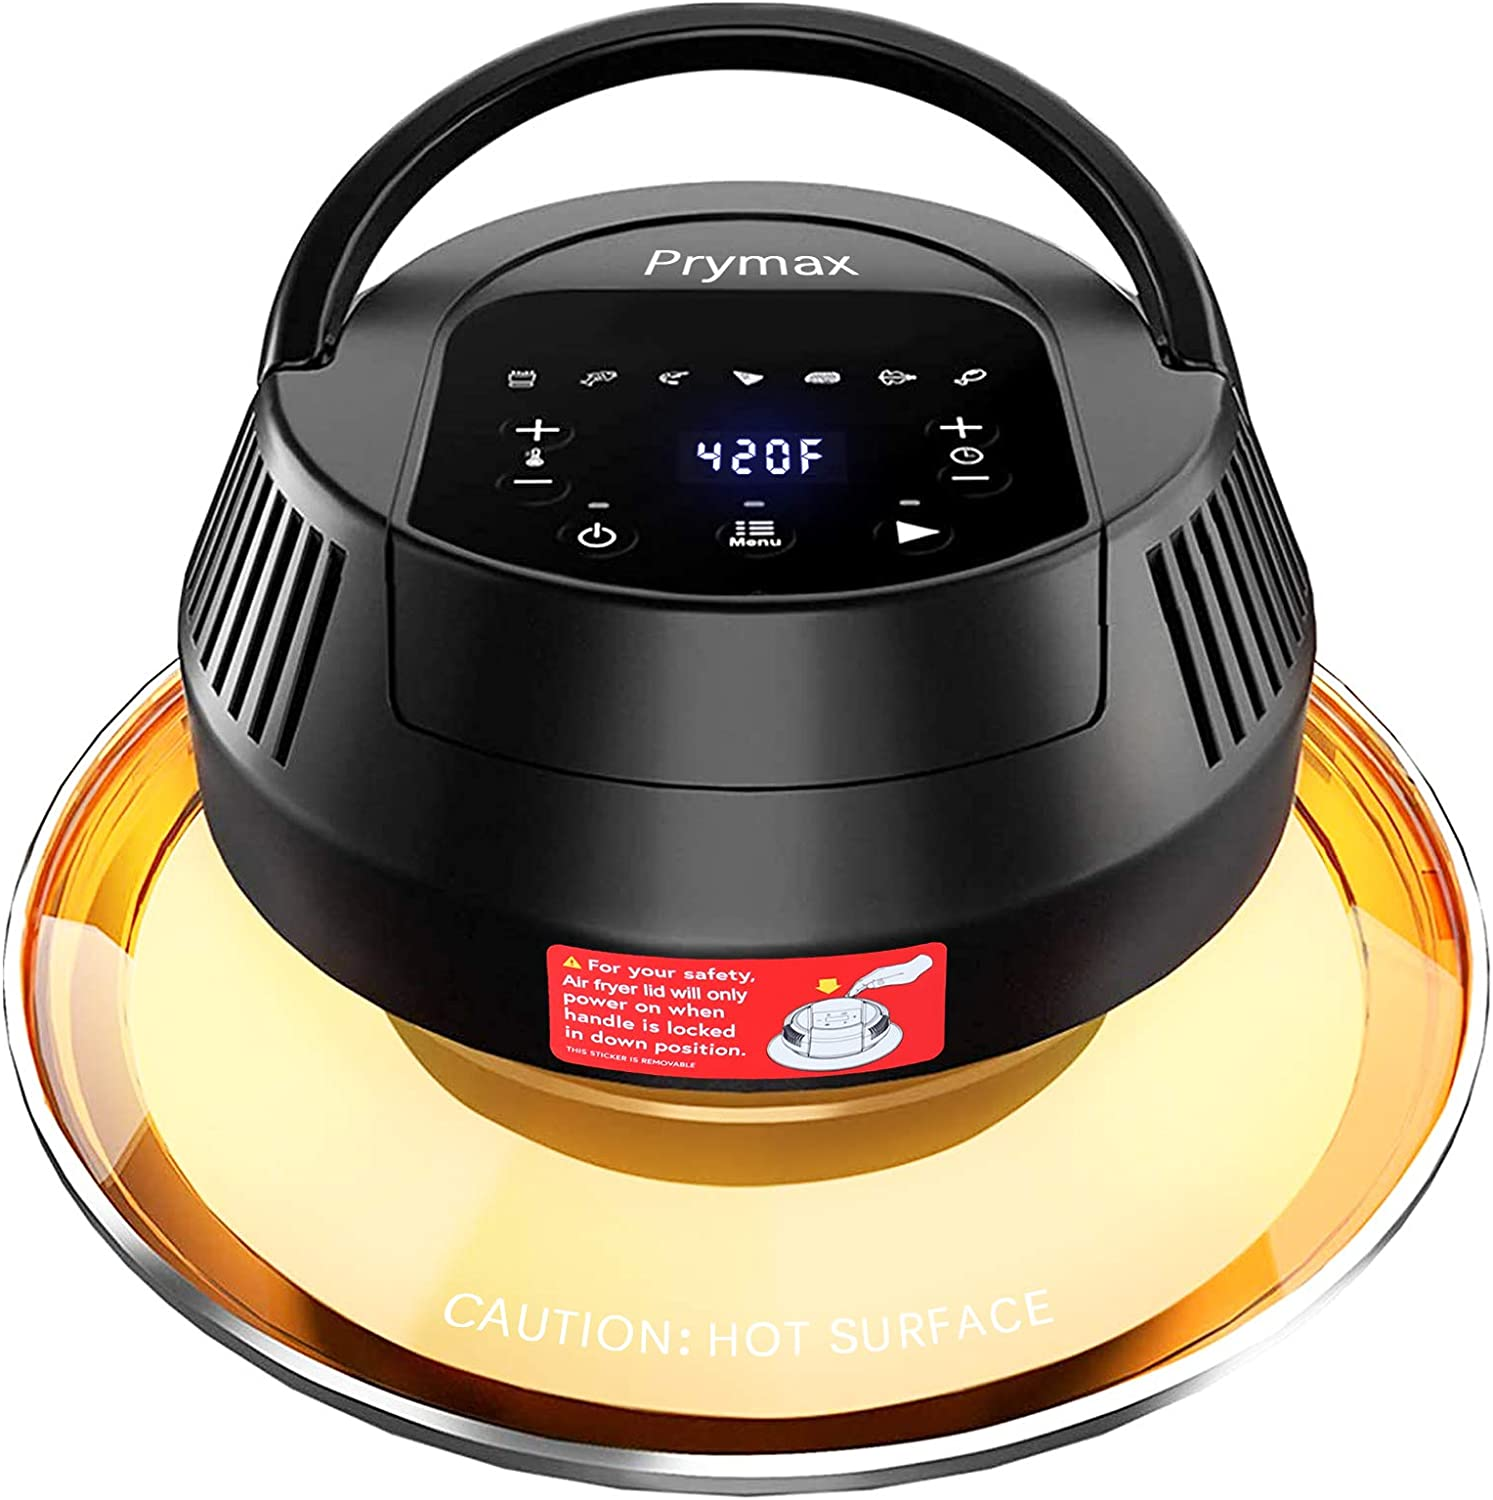 Prymax Air Fryer Lid for Pressure Cooker 6 & 8 Quart, 8 in 1 Air Fryer Lid for Instant Pot, Turn Your Electric Pressure Cooker into Air Fryer with LED Touchscreen and ETL Safety Protection for Air Frying, 98% Less Oil Crisp for Healthier Diet